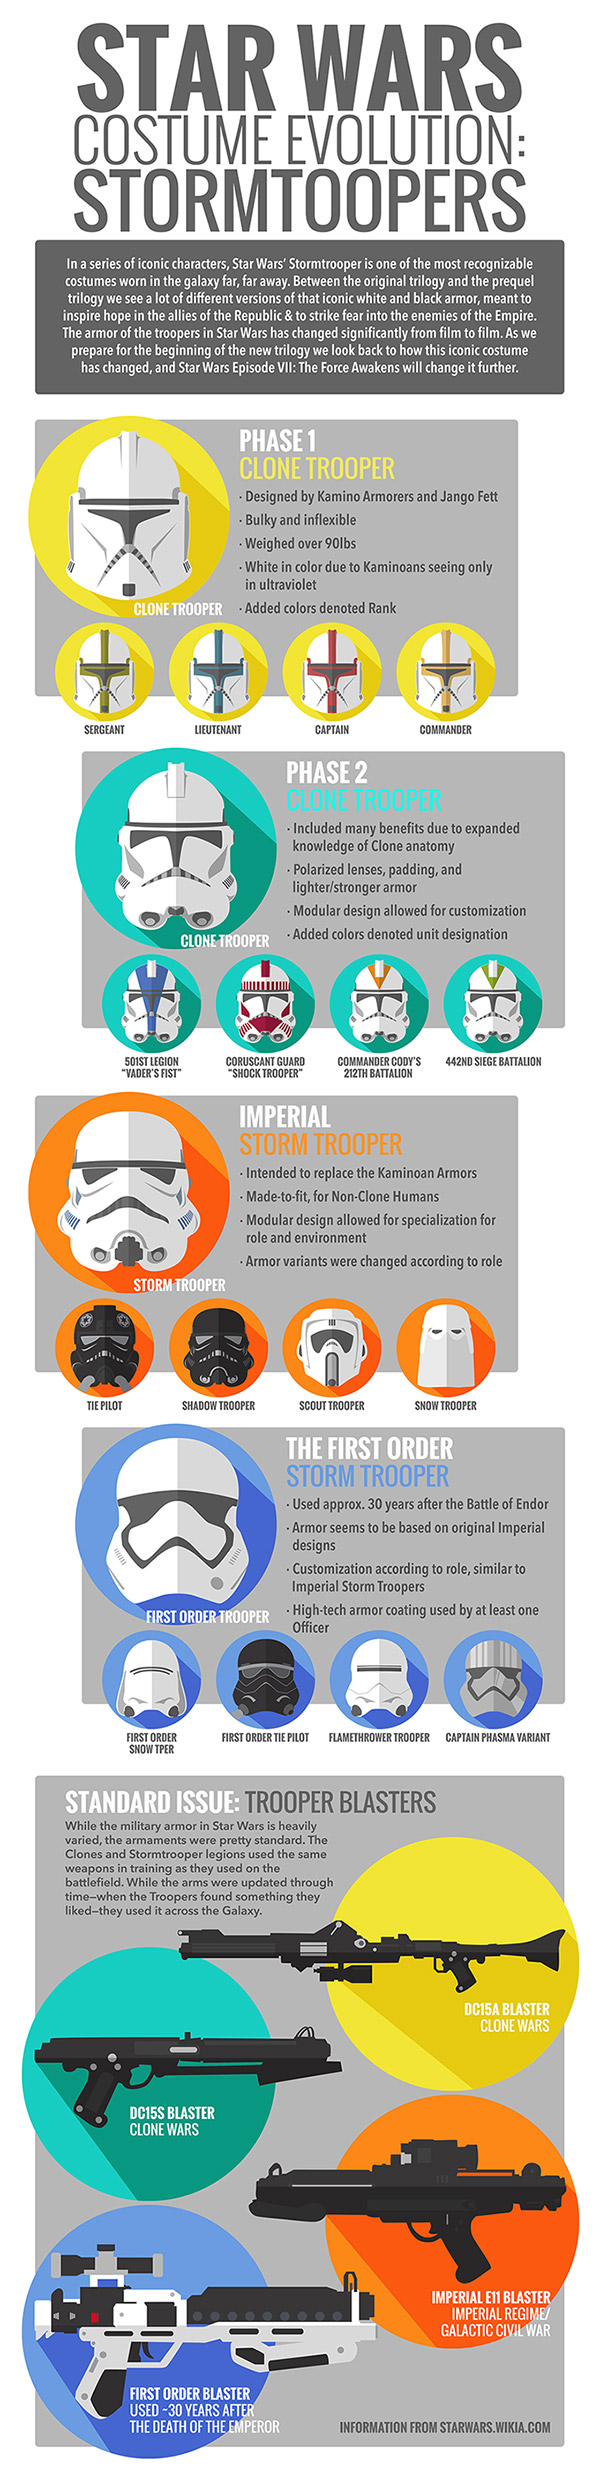 Star-Wars-Costume-Evolution-The-Stormtrooper